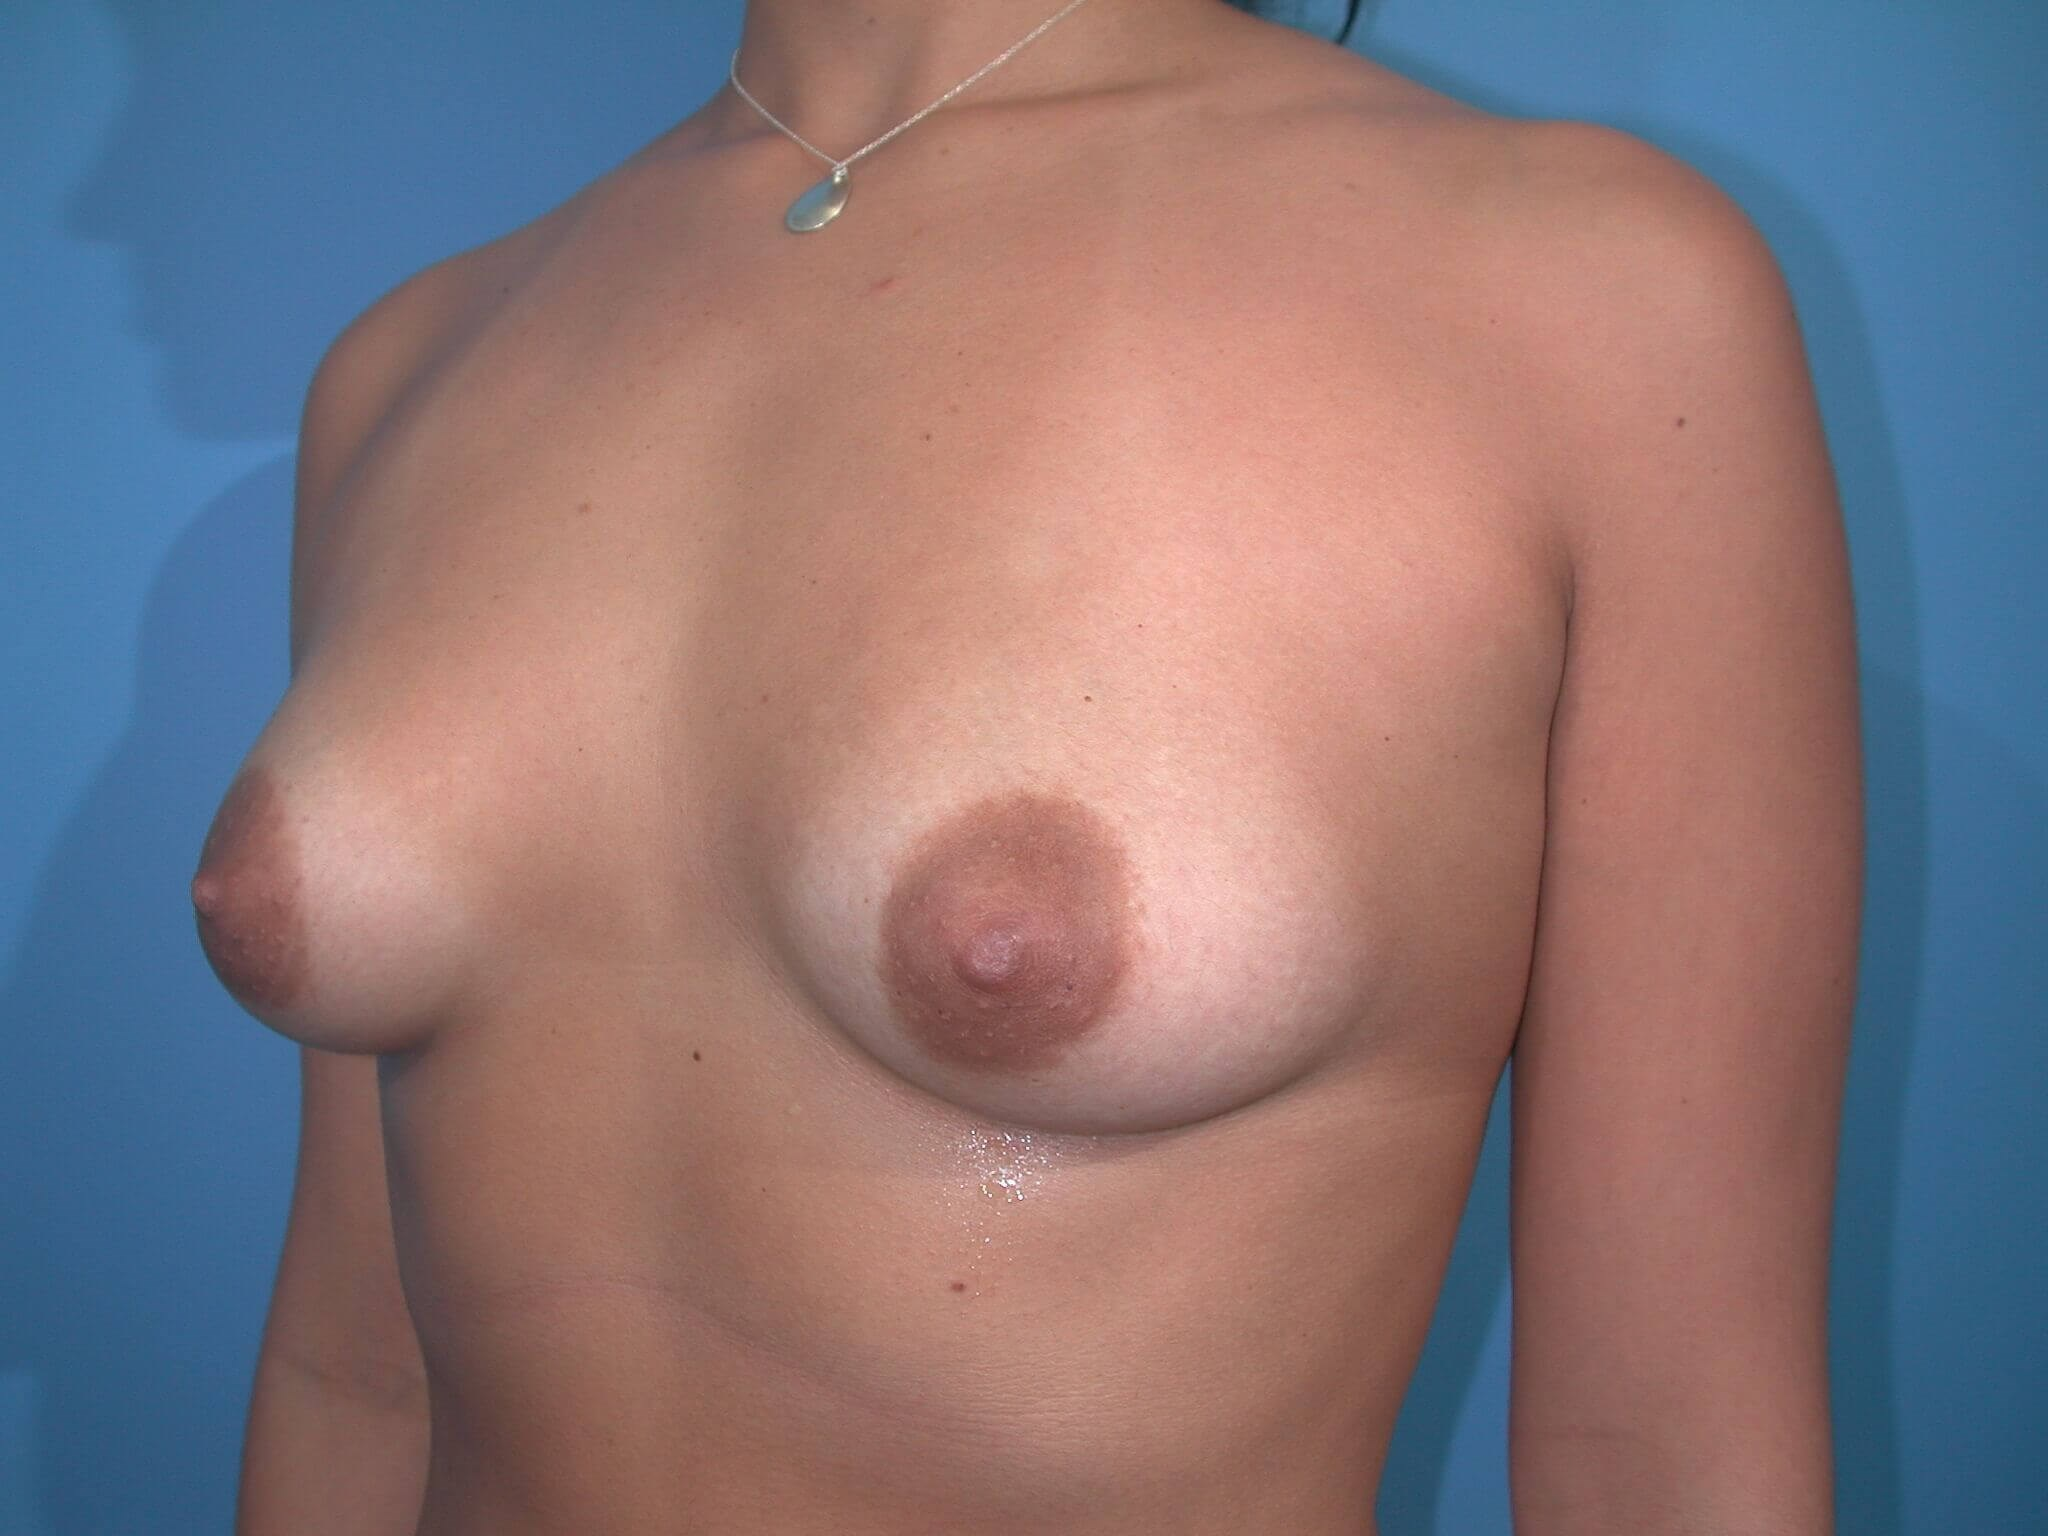 Left Before Implants